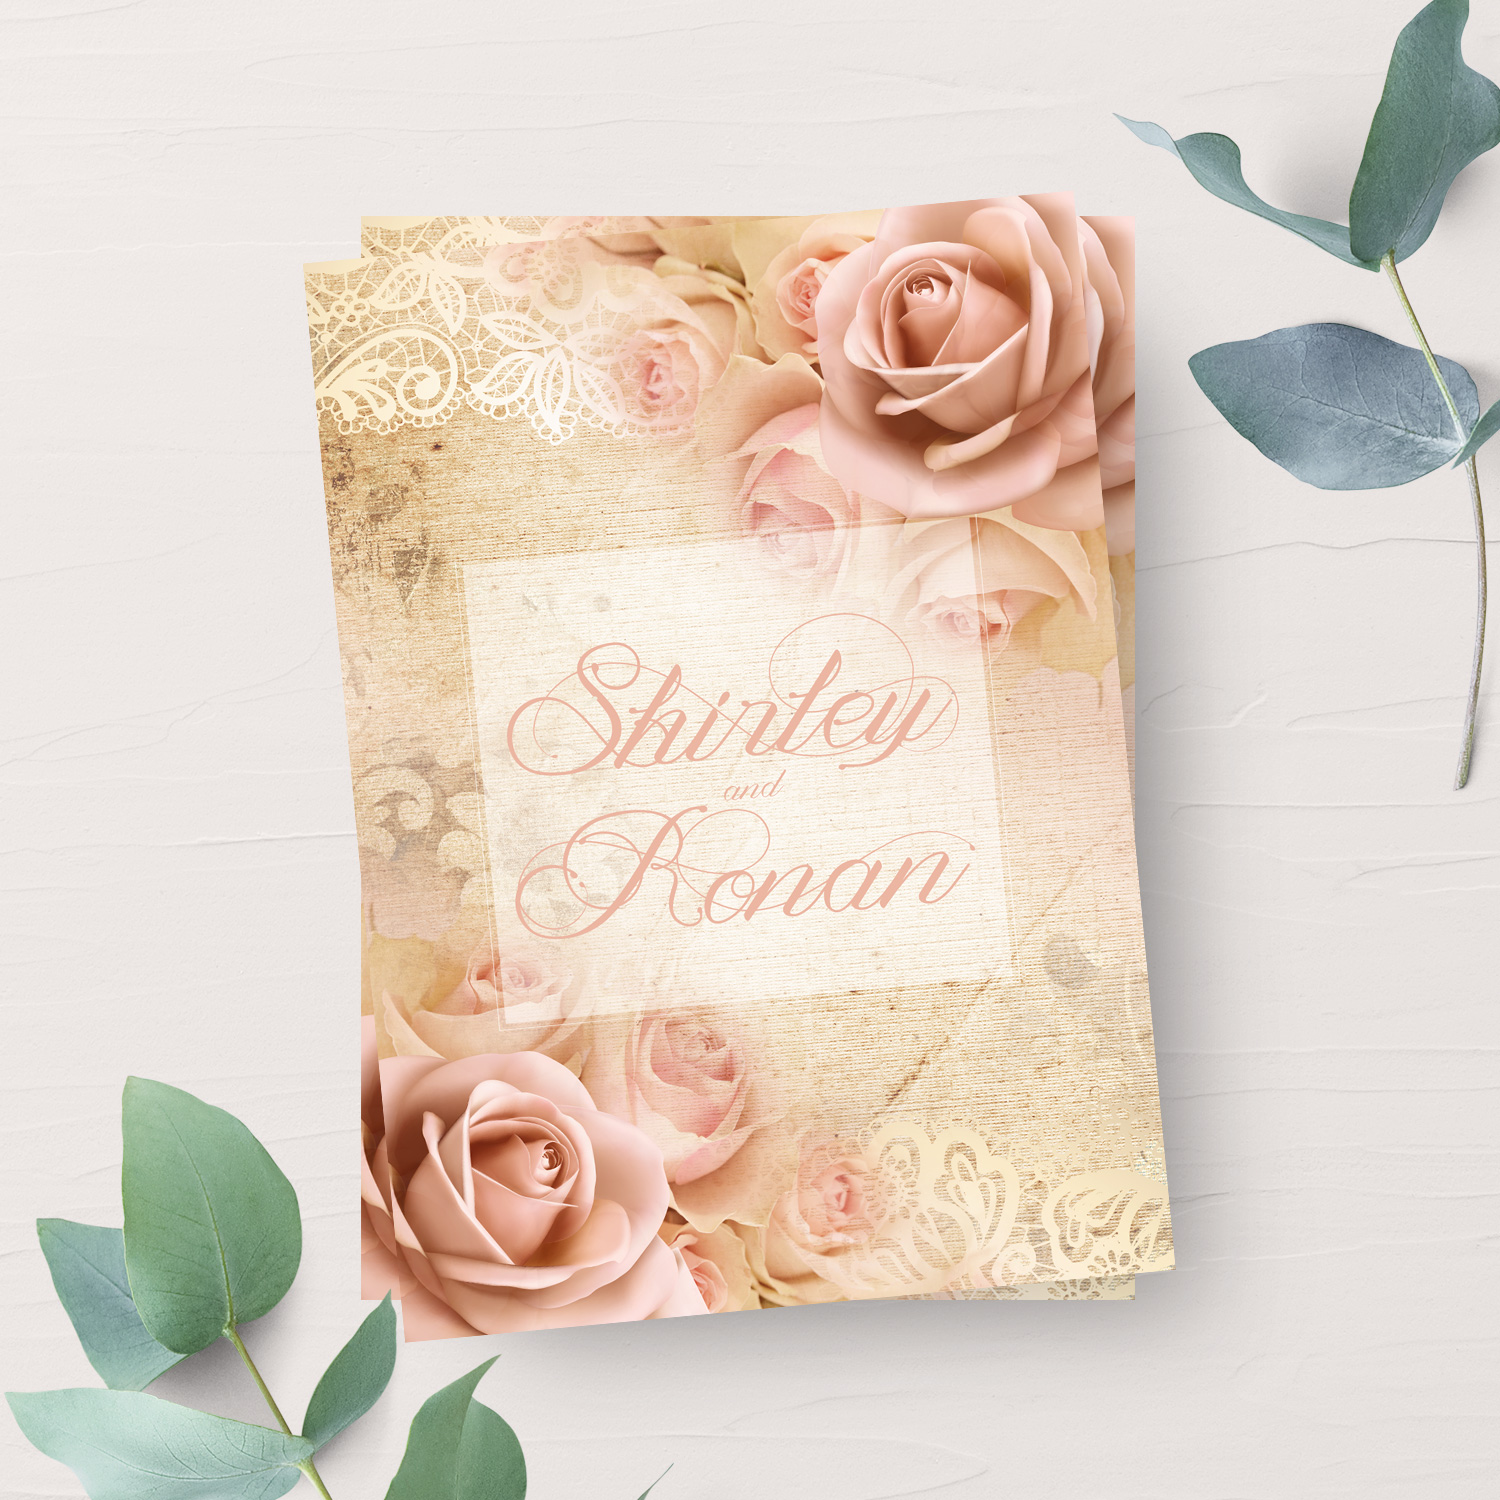 peach rose wedding invitation stationery killarney